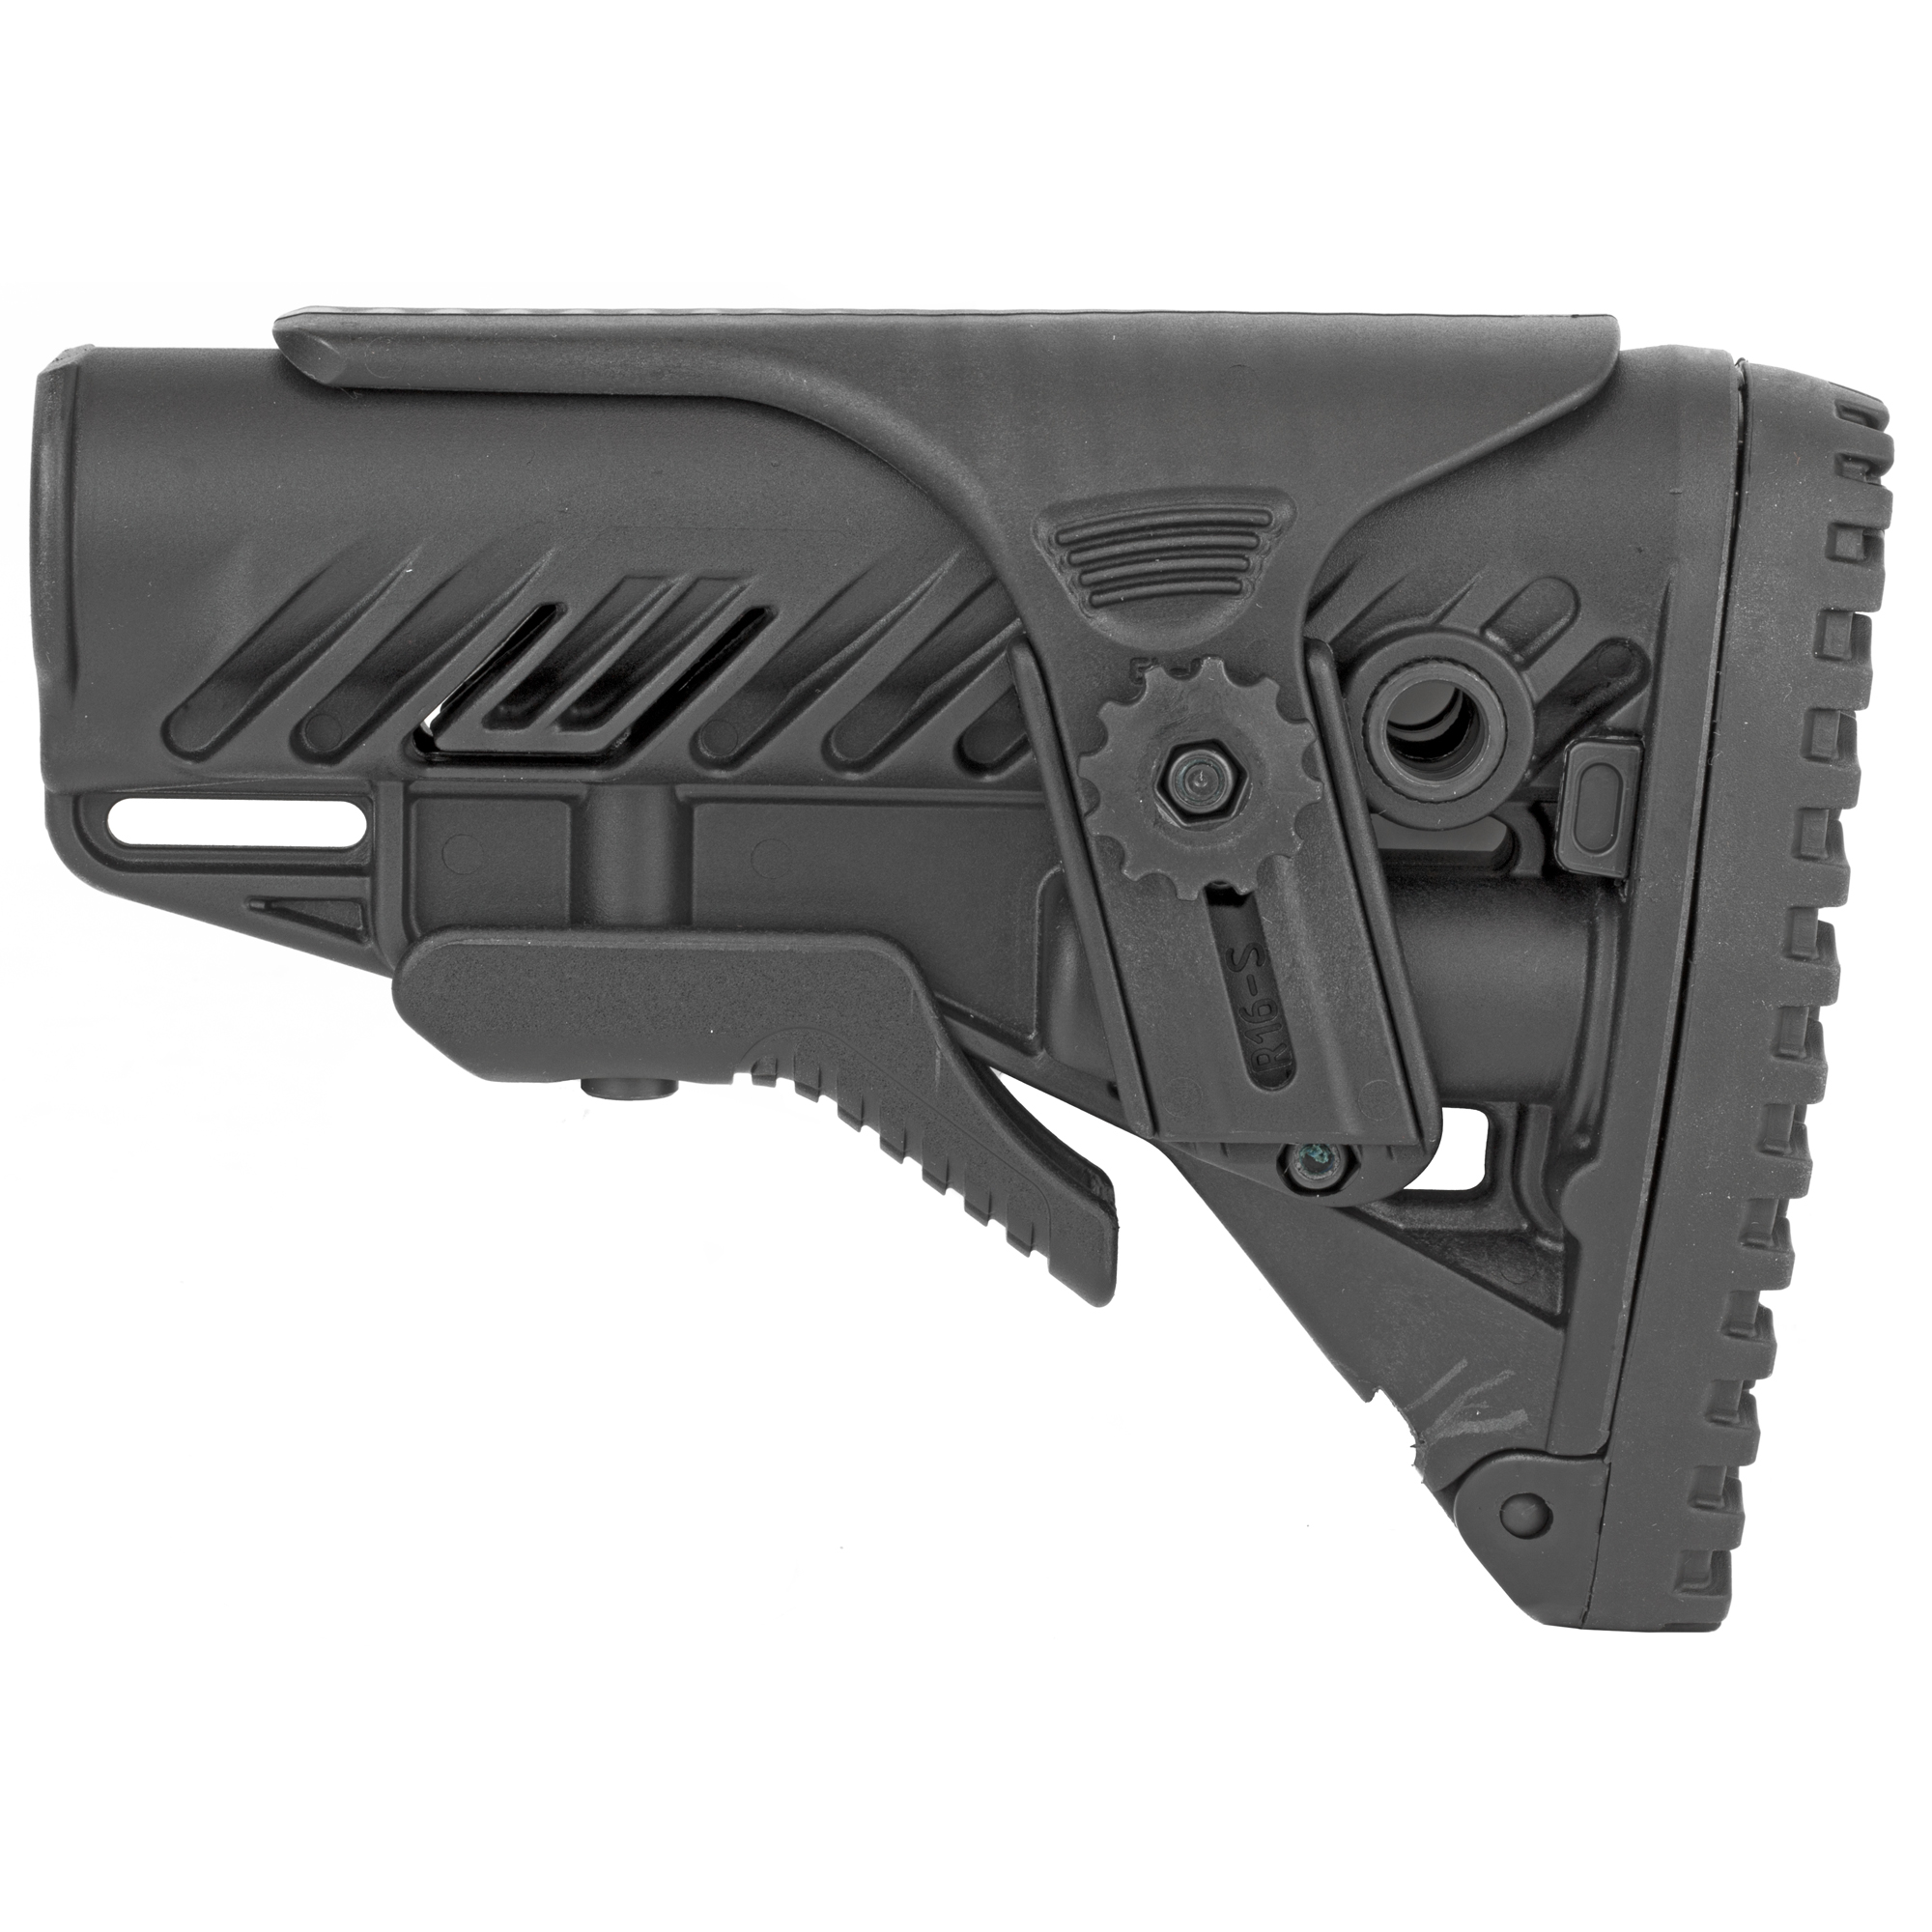 "The GLR-16 Buttstock for your AR15/M16 provides you with enhanced versatility with it's stock extension and adjustable Cheek Rest. It's non-slip unique traction design rubber butt pad"" allows fast and stable shoulder positioning. There are three integrated slots for sling attachment"" one in the front and two at the rear."